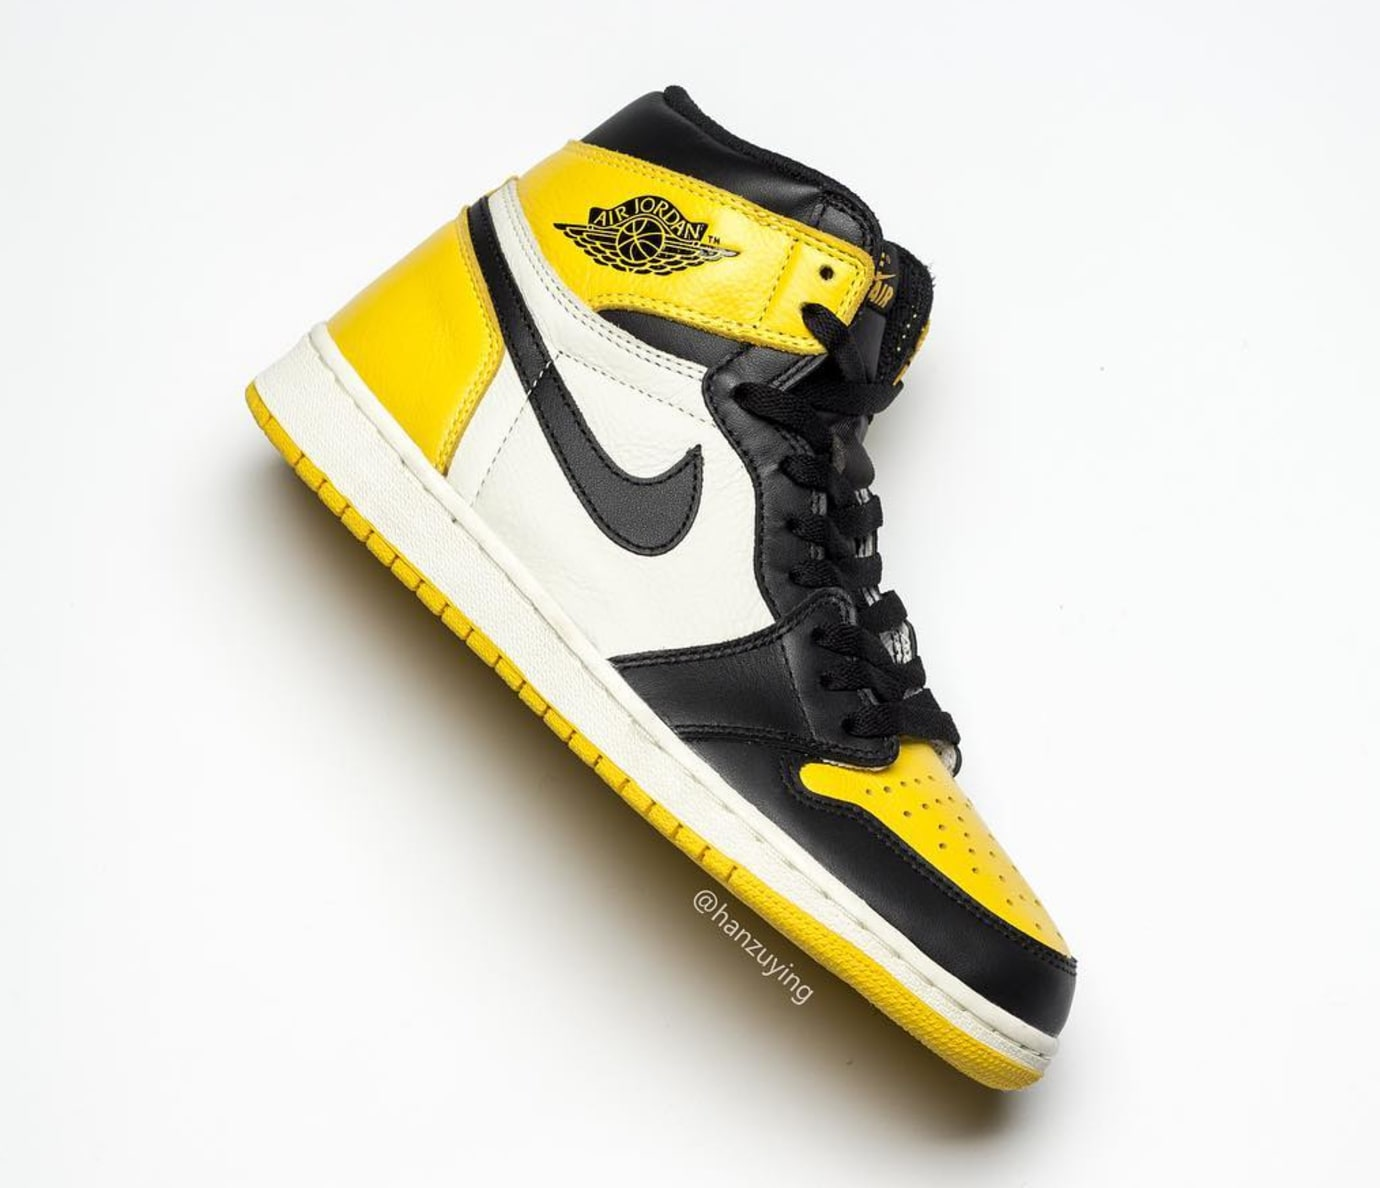 Air Jordan 1 Retro High OG 'Yellow Toe' AR1020-700